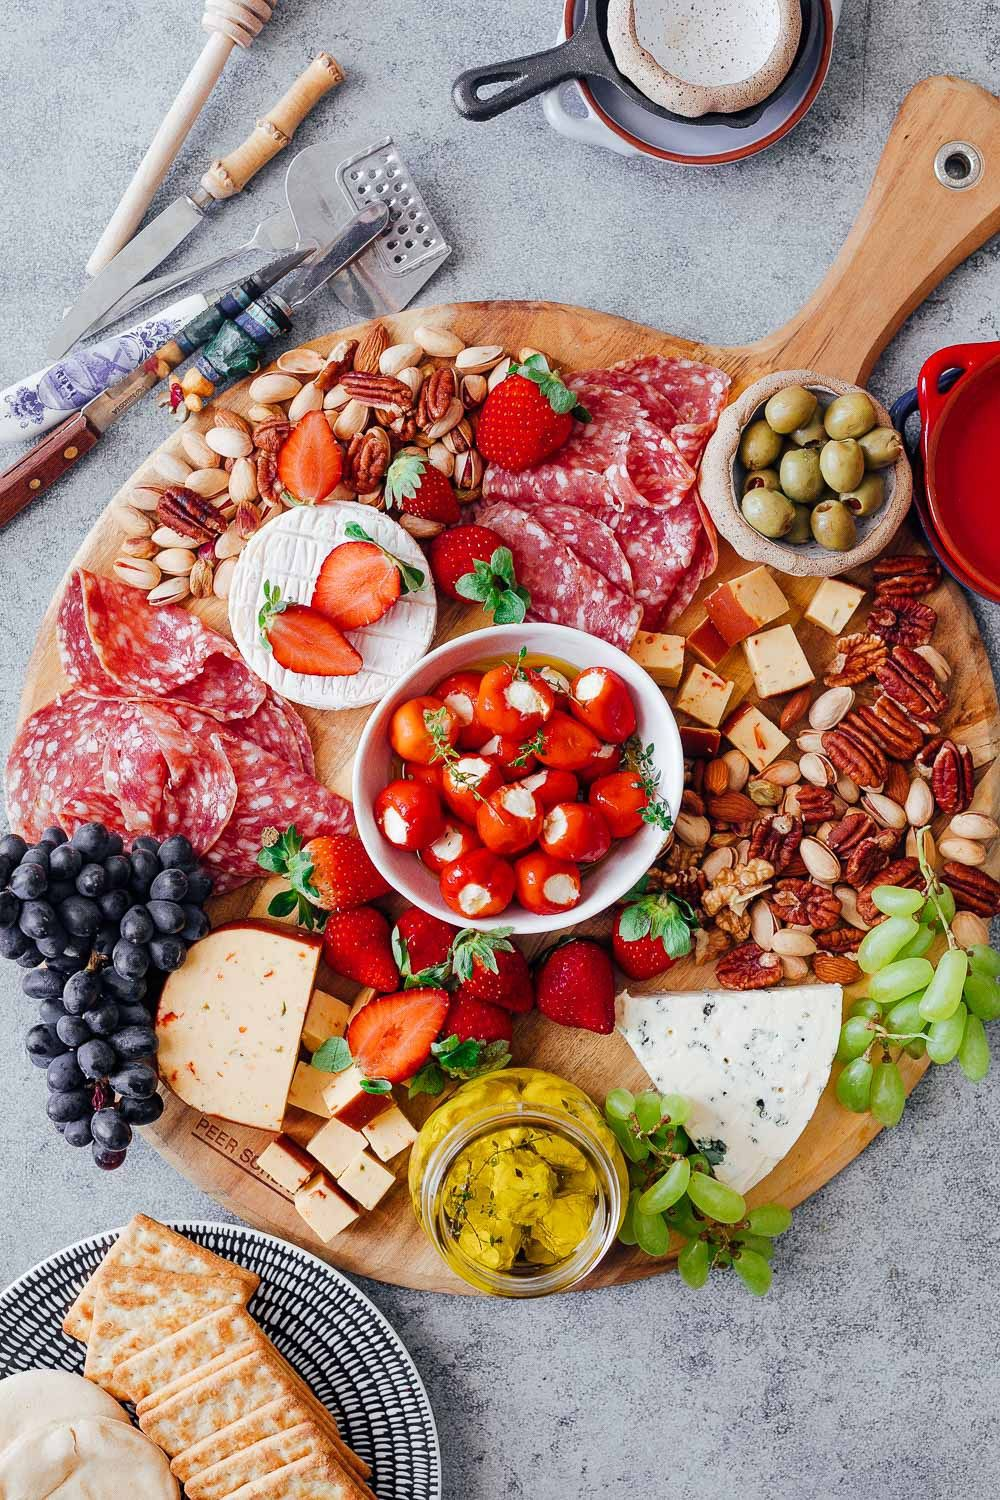 How To Make The Ultimate Wine And Cheese Board On A Budget Recetas Saludables Recetas Salud